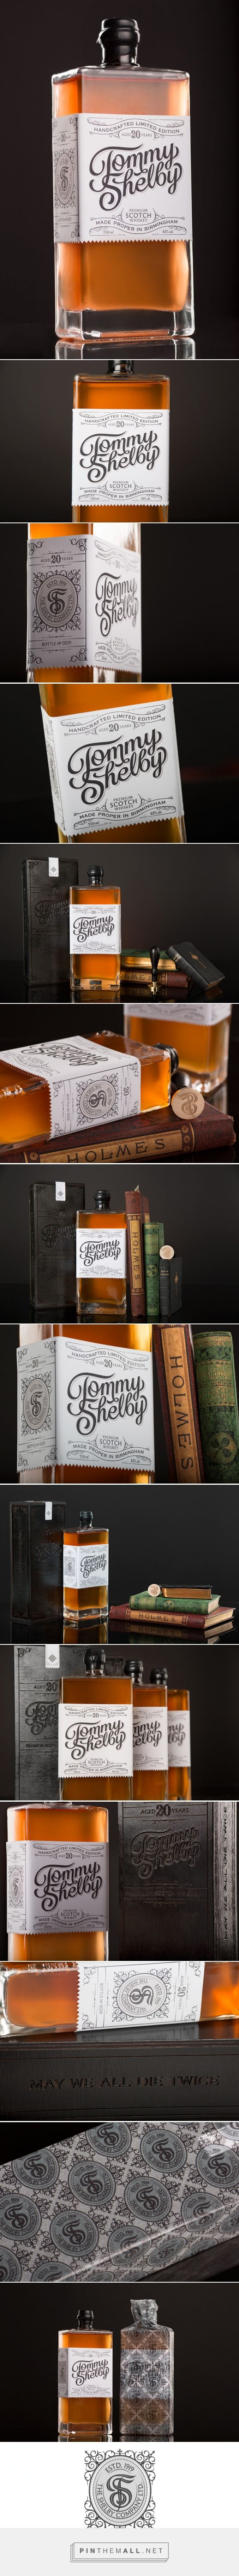 Tommy Shelby #Whiskey #concept #packaging designed by Scott Biersack - http://www.packagingoftheworld.com/2015/04/tommy-shelby-whiskey-student-project.html